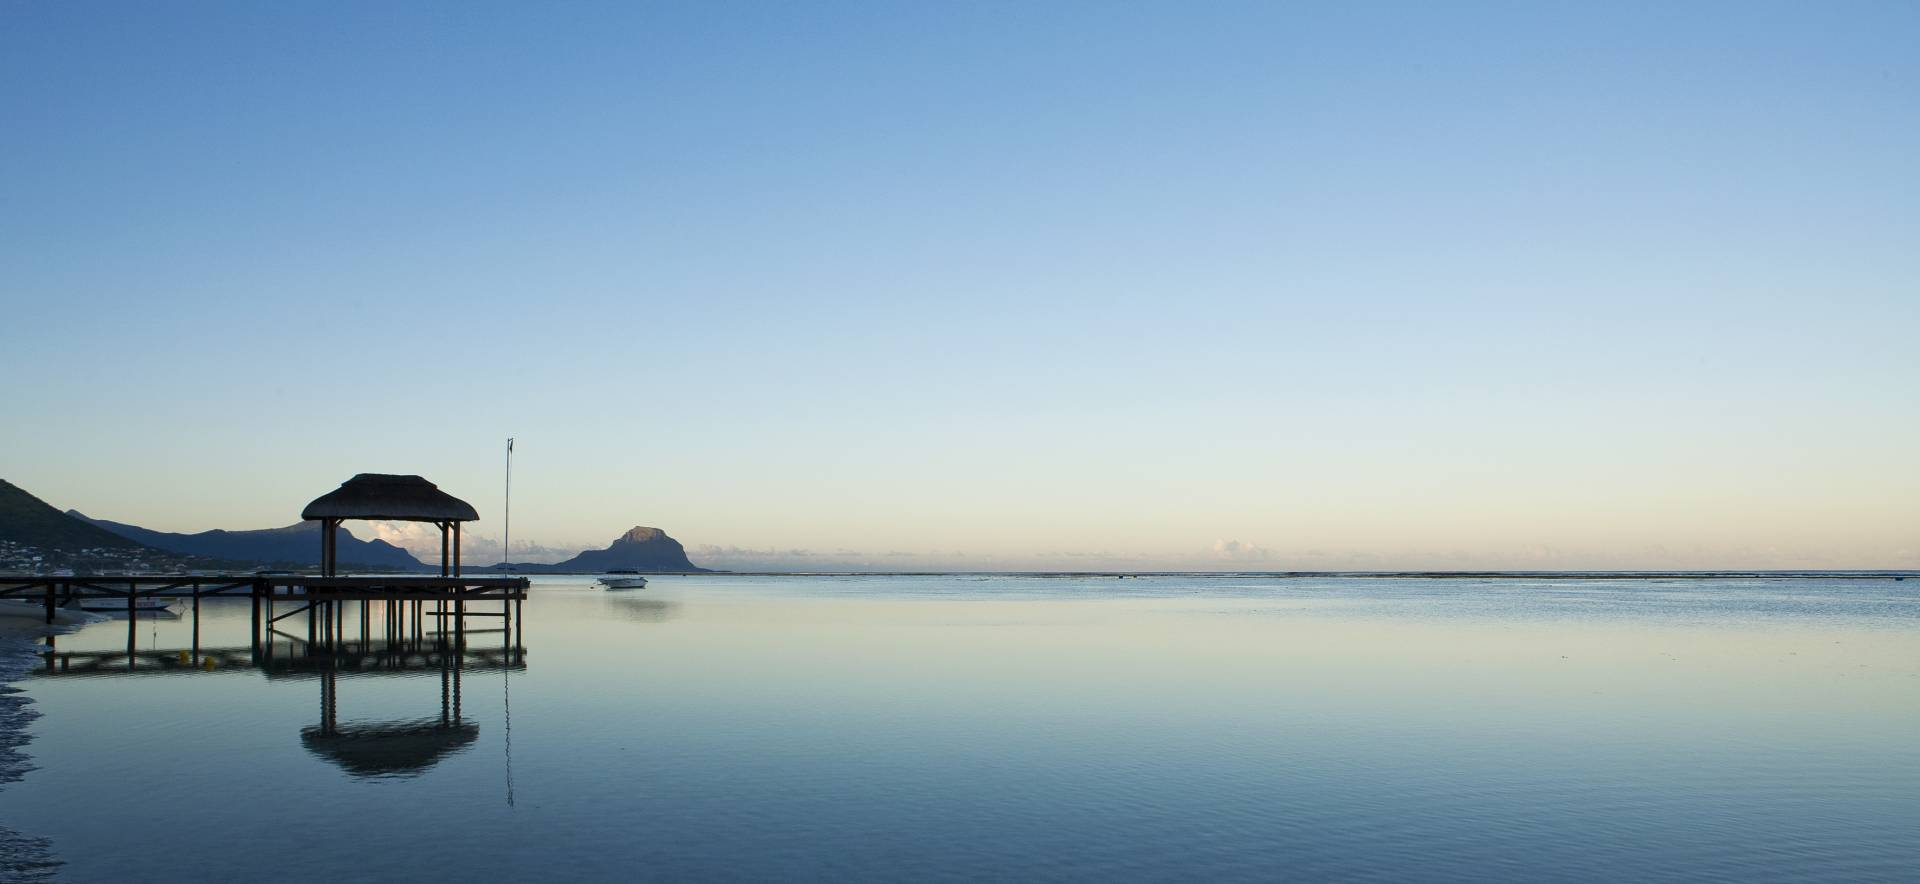 I never realised that mauritius could be a holiday destination for families until I read this